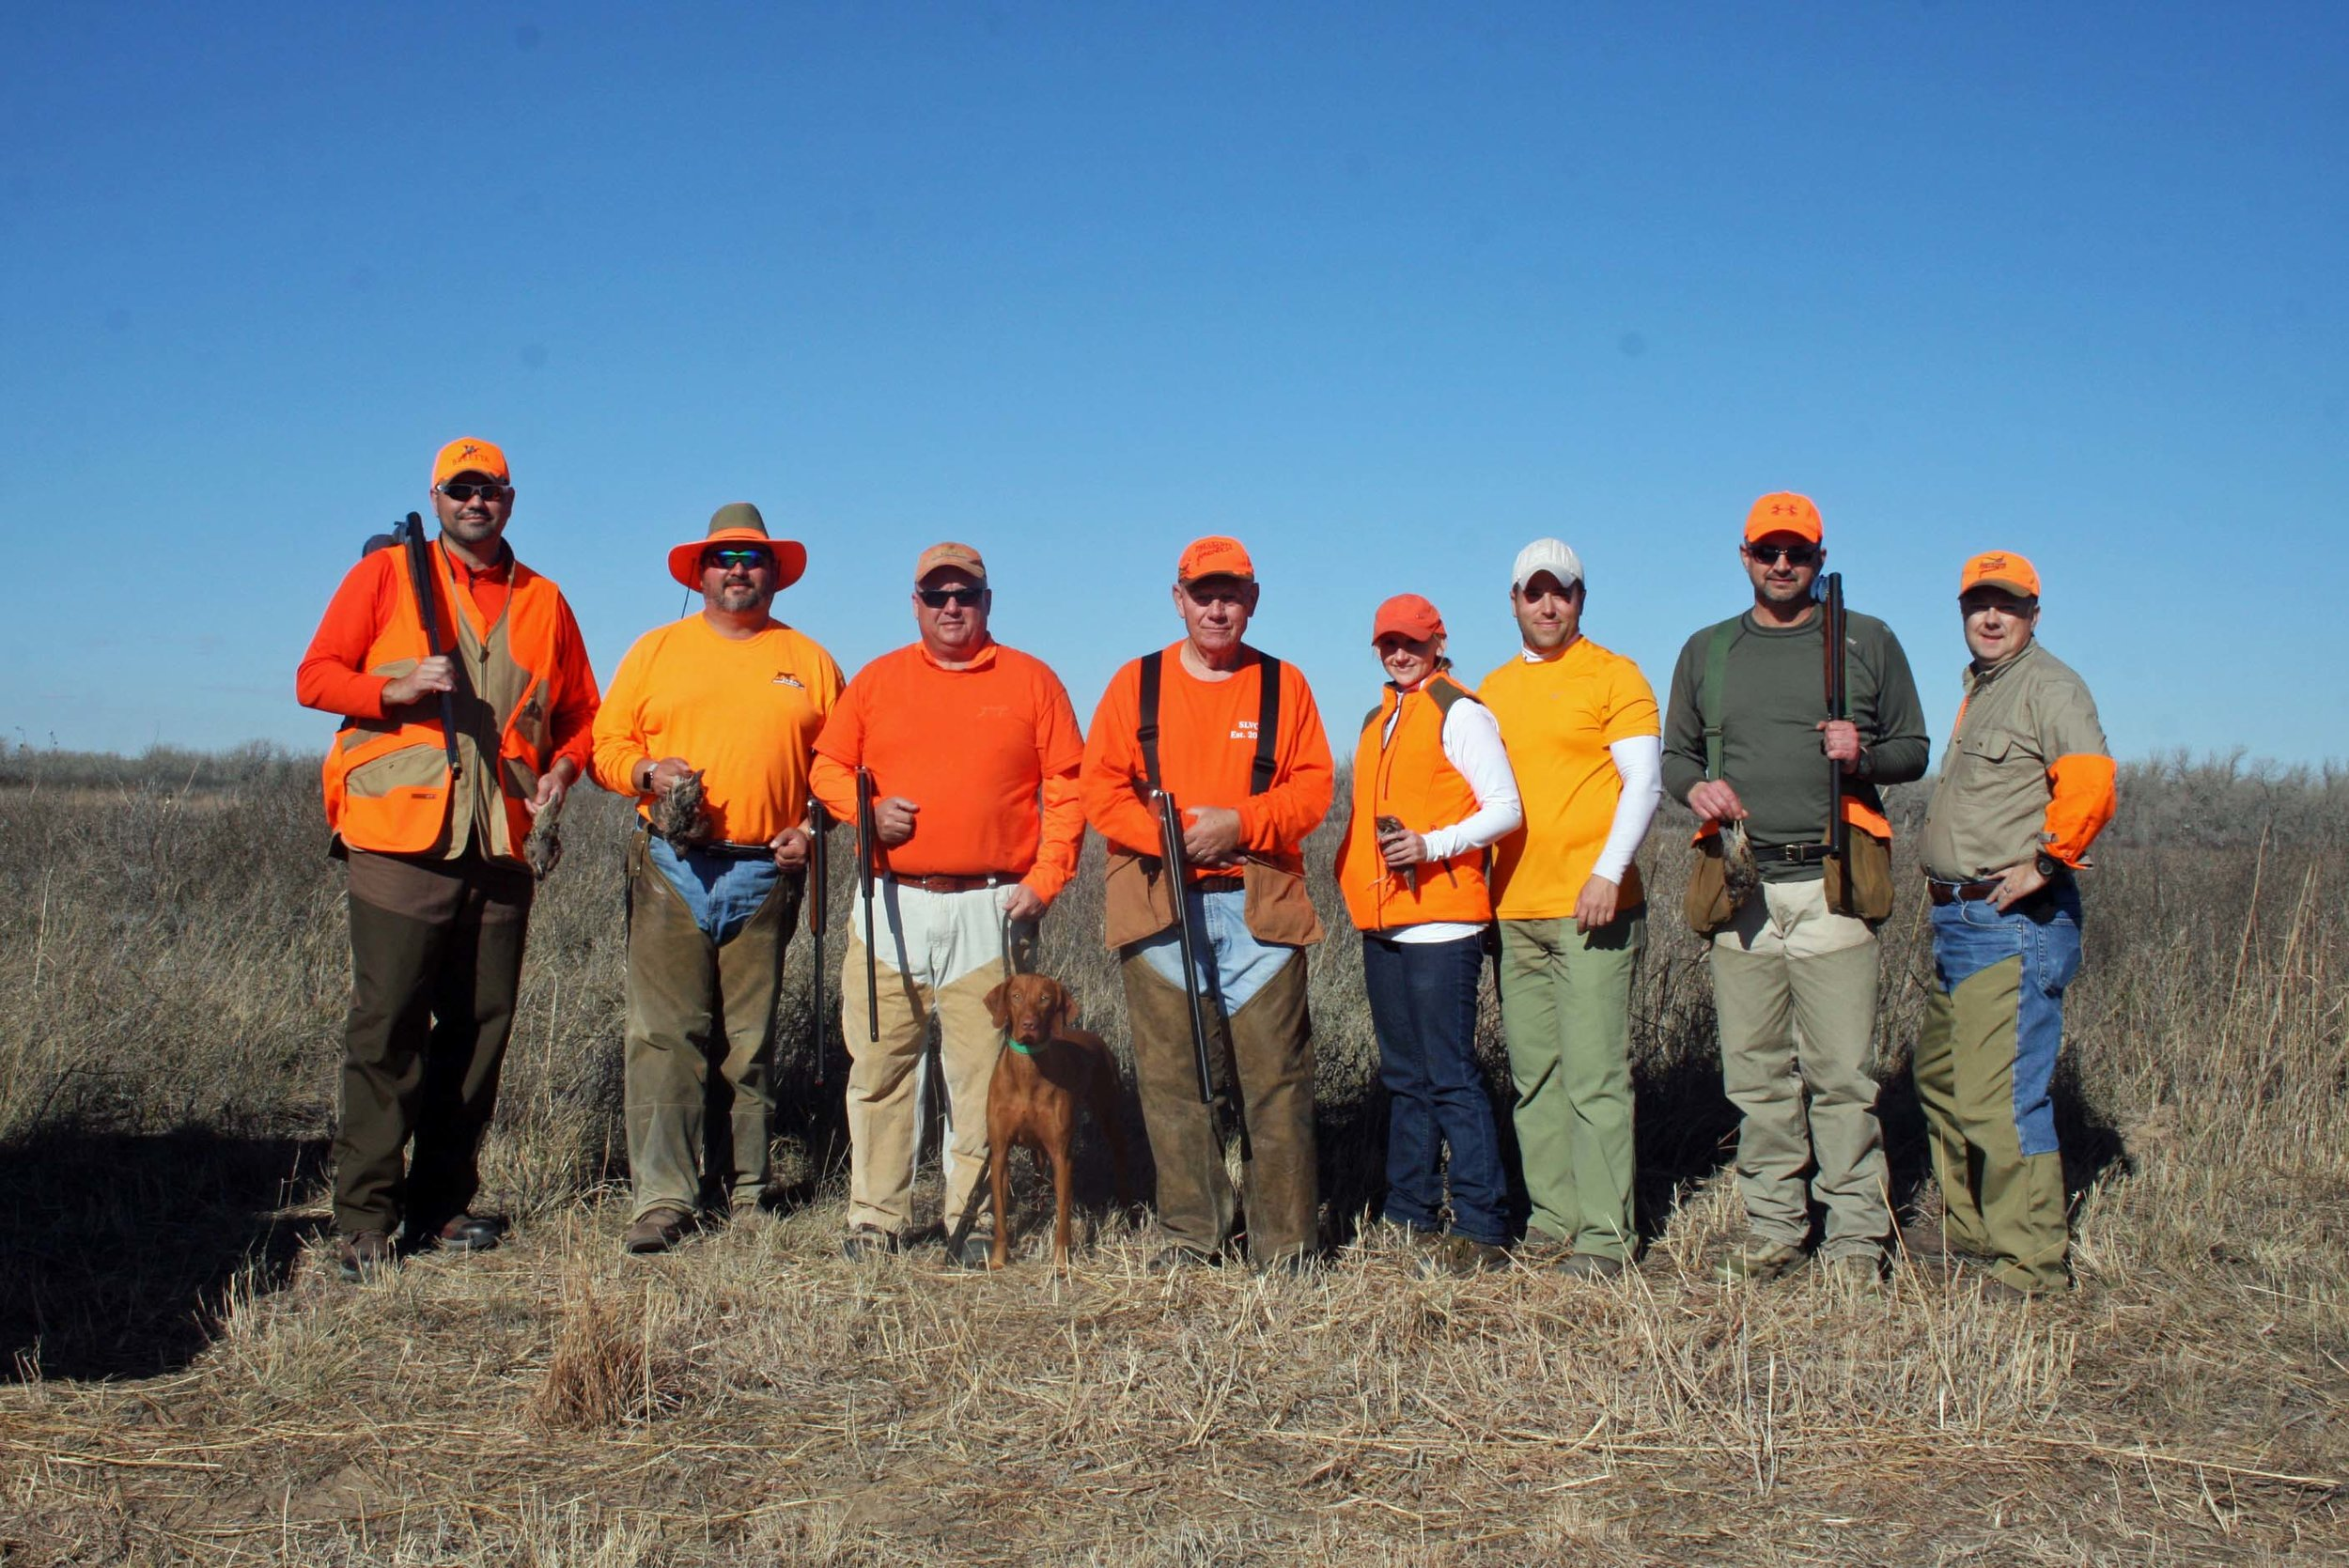 Lone Star quail/pheasant forever optima wma in ok december 2015